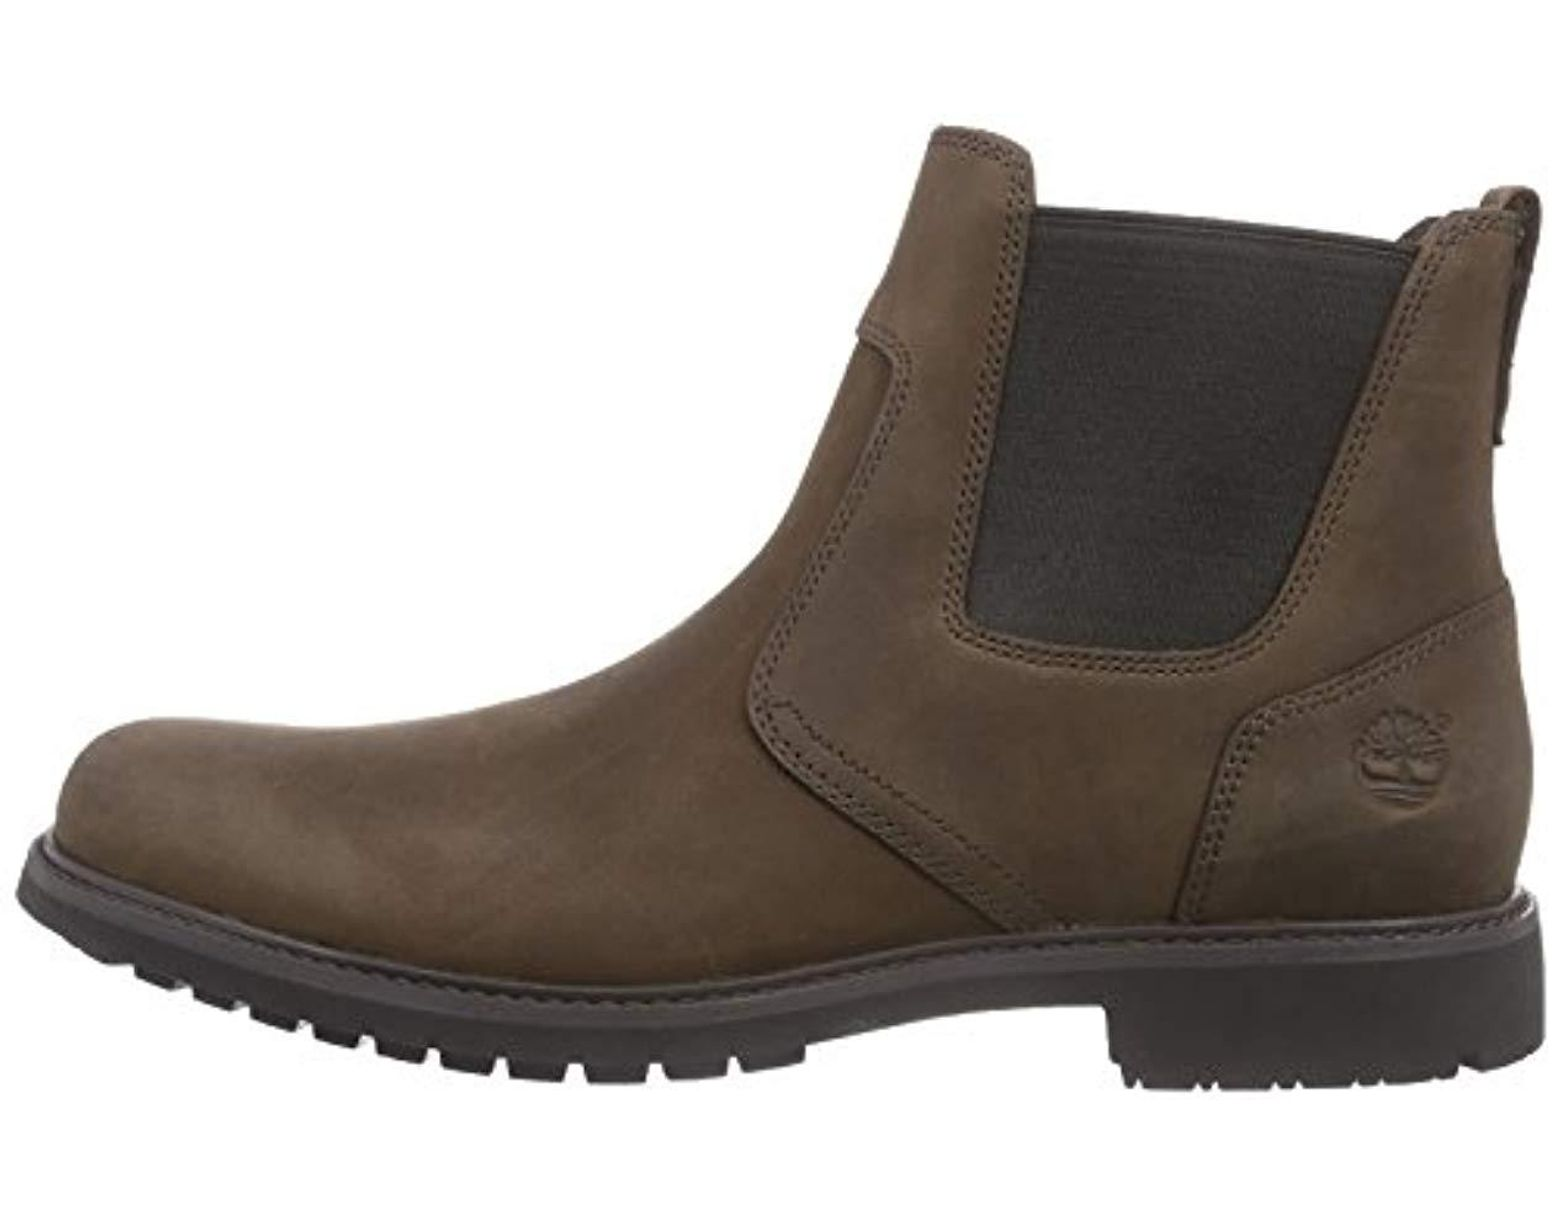 timberland men's earthkeepers stormbucks chelsea ankle boots